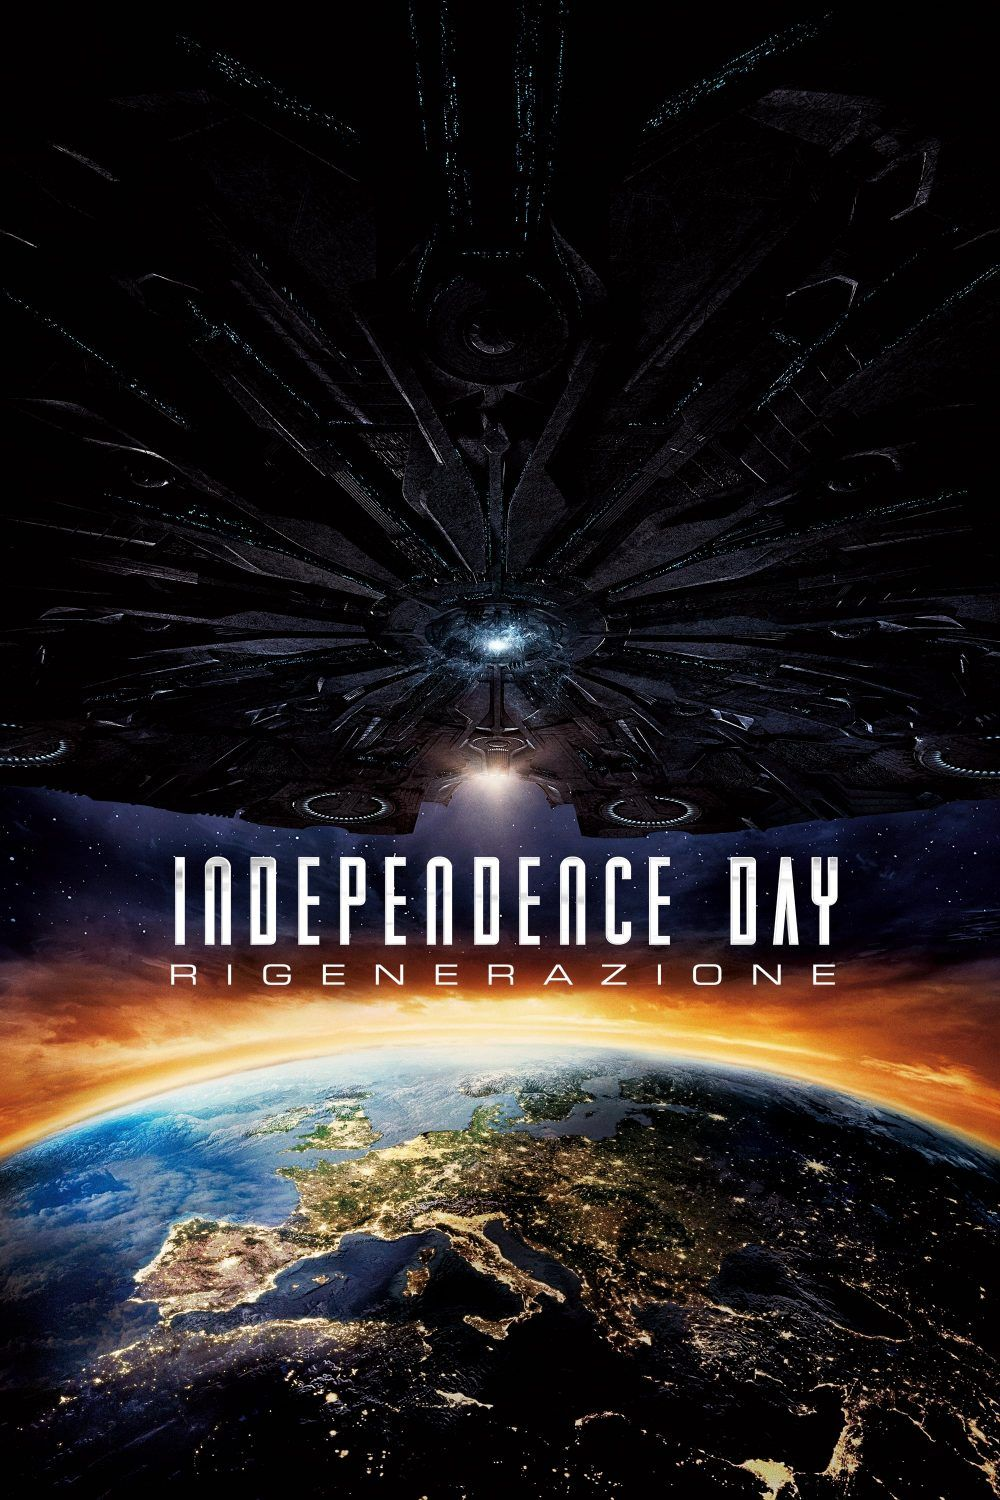 Independence Day Rigenerazione Streaming Film E Serie Tv In Altadefinizione Hd Film Film Fantascienza Locandine Di Film